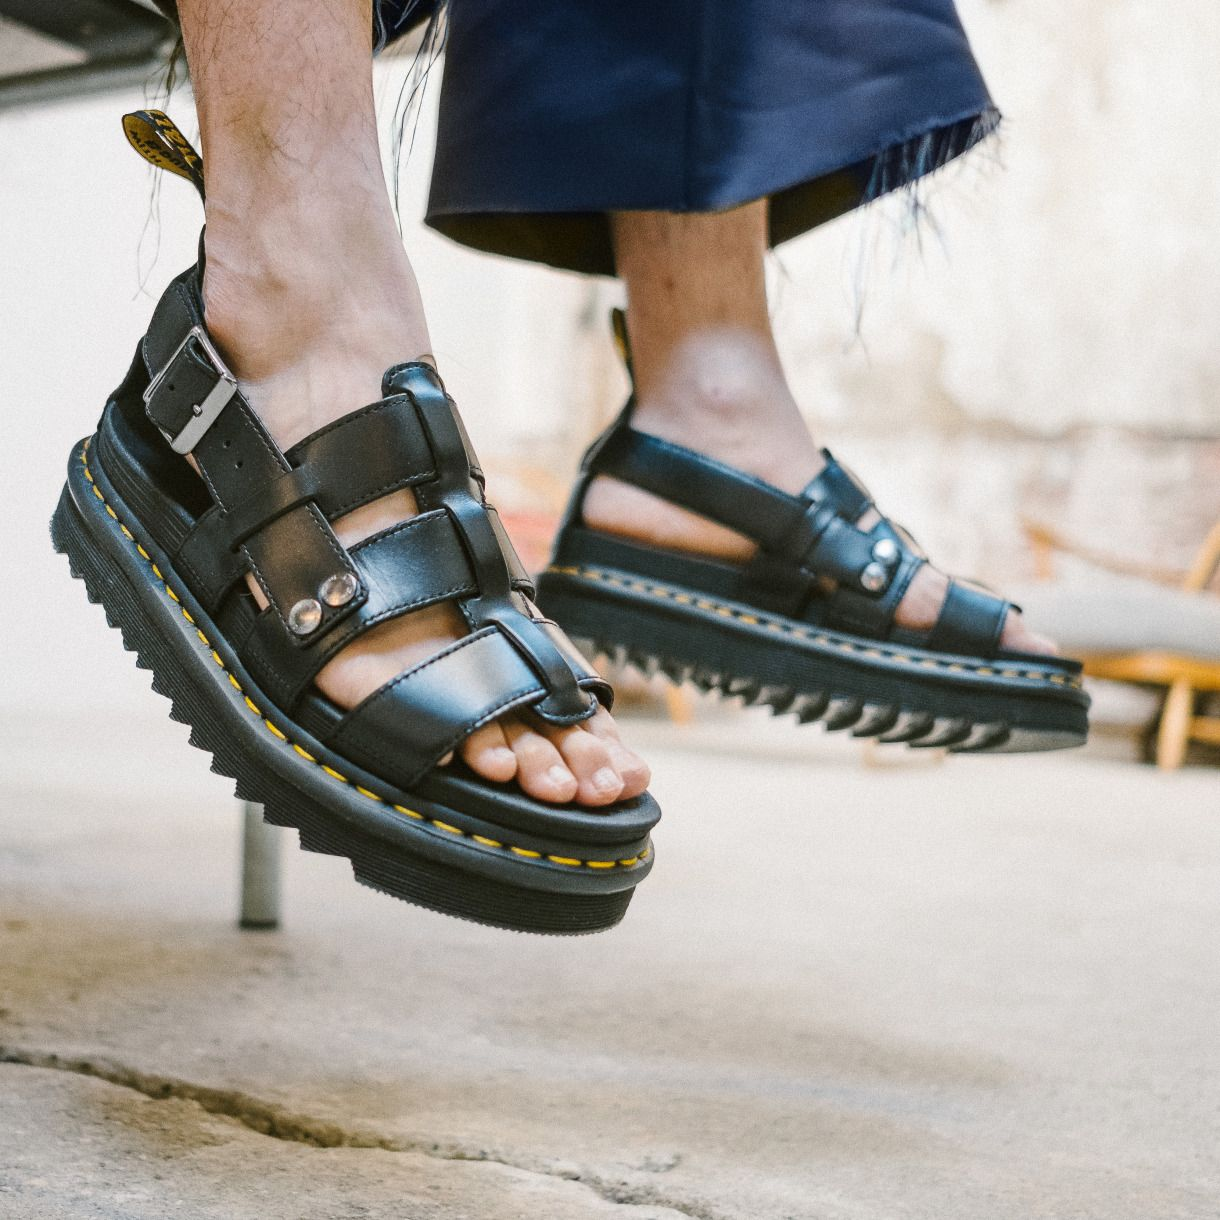 Dr martens terry | shoes | Dr martens sandals, Sandals, Fashion